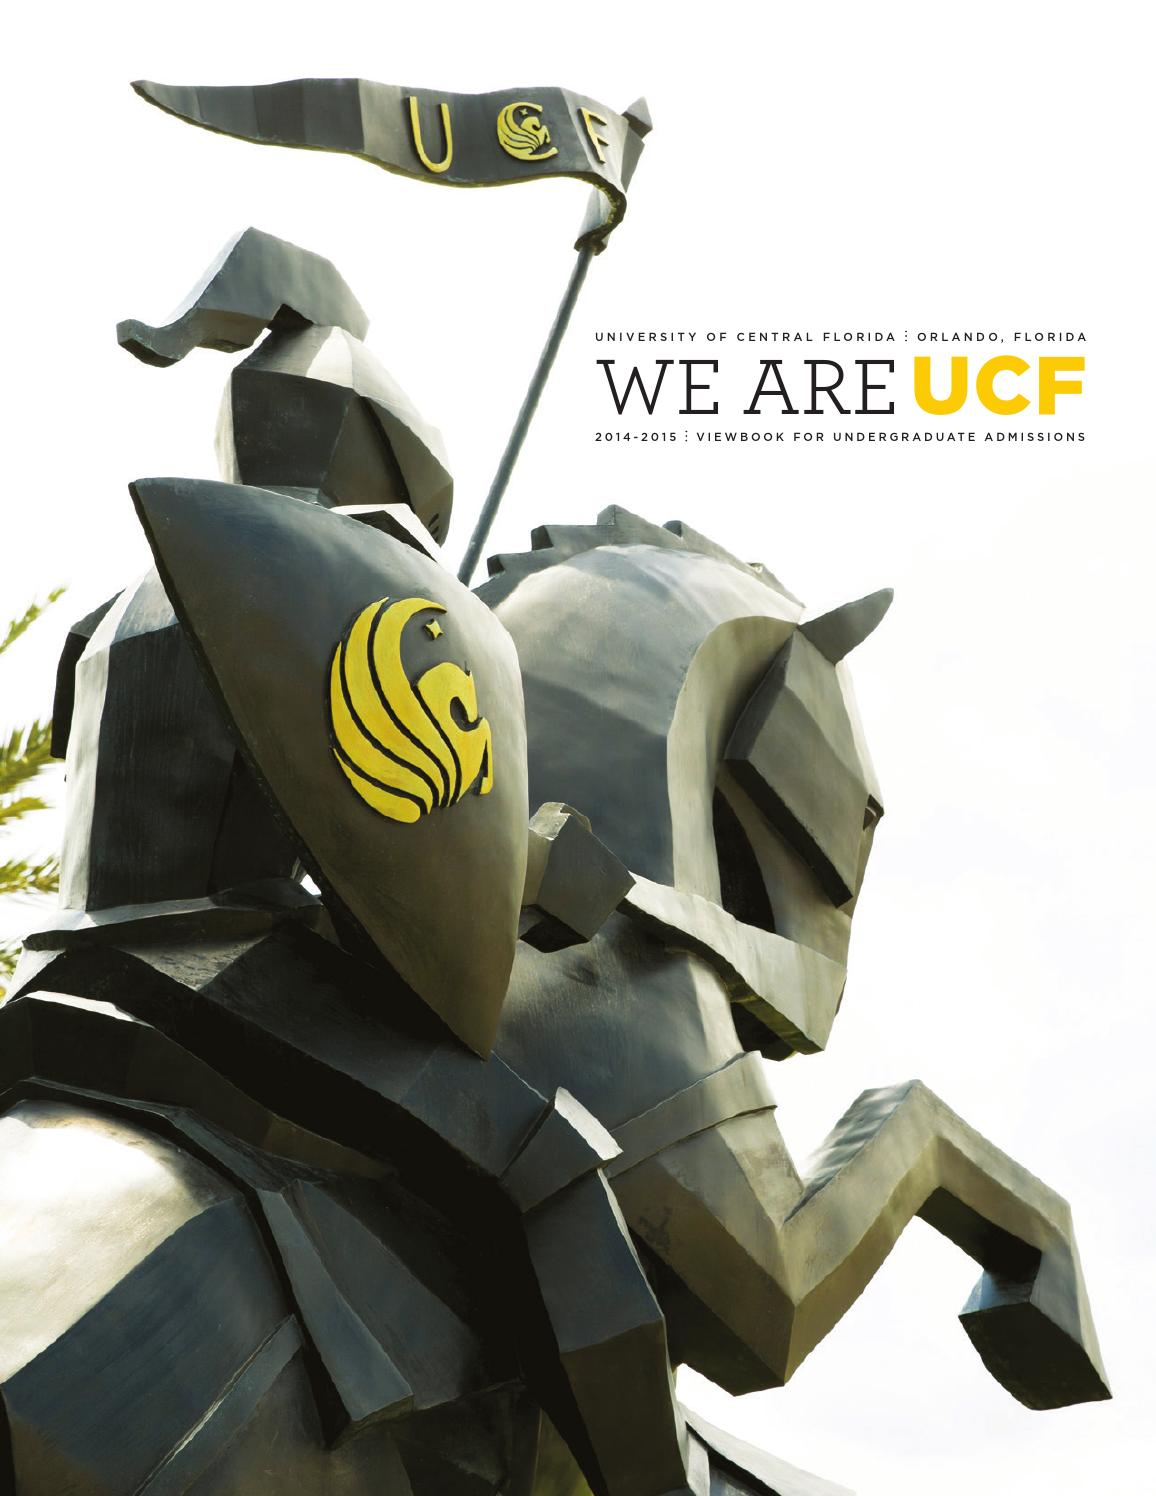 university of central florida viewbook by university of  university of central florida viewbook 2014 2015 by university of central florida issuu